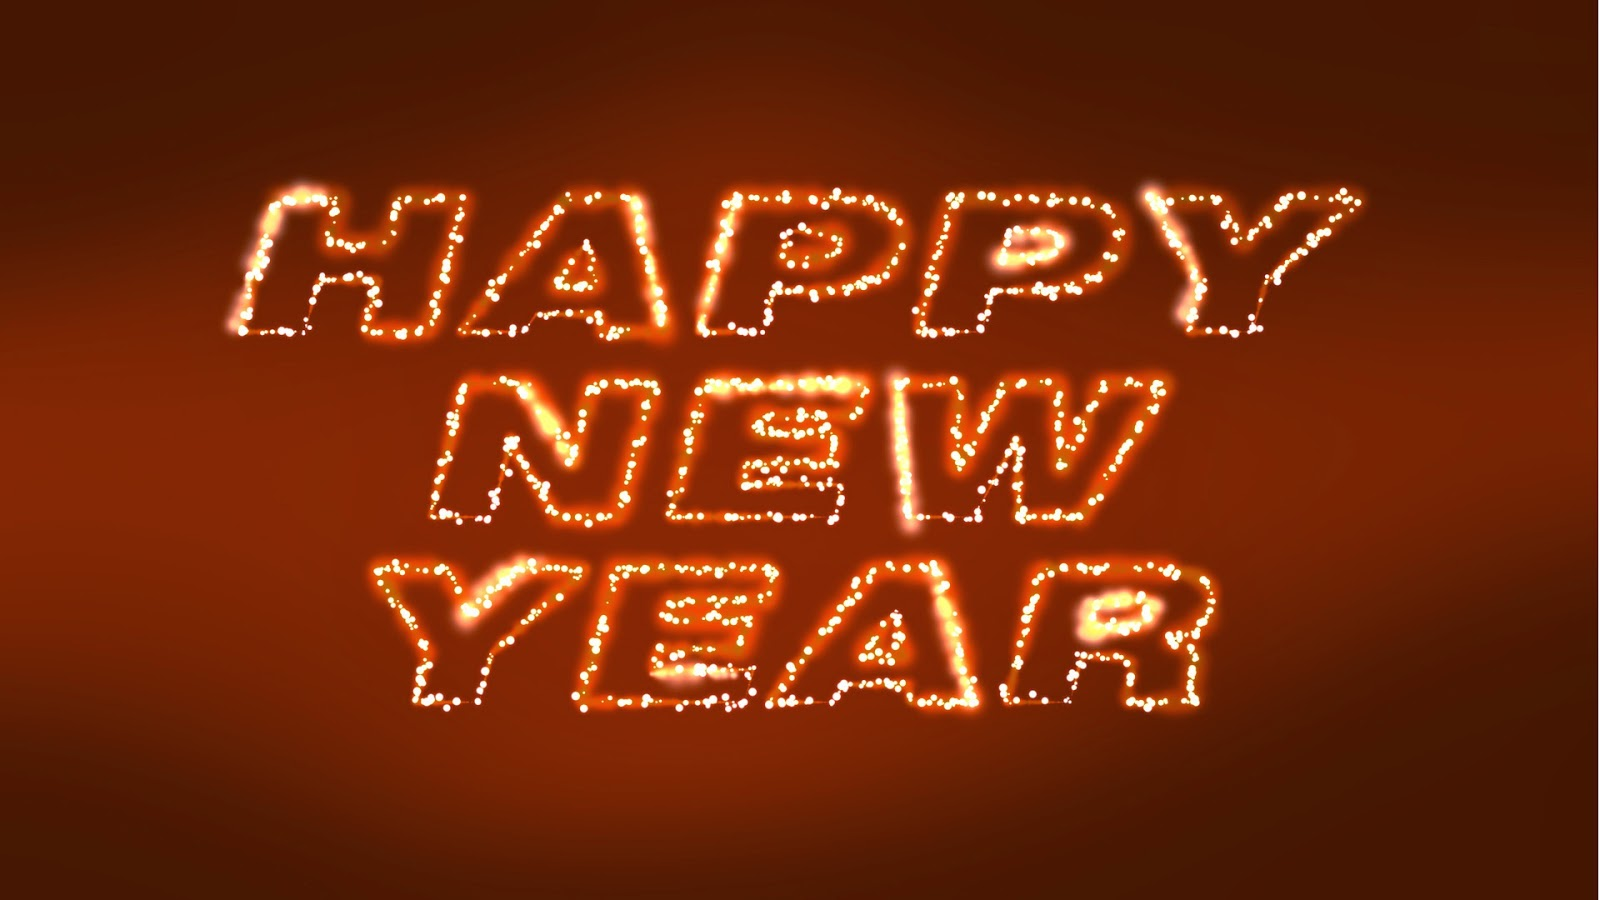 happy new year 2015 whatsapp images